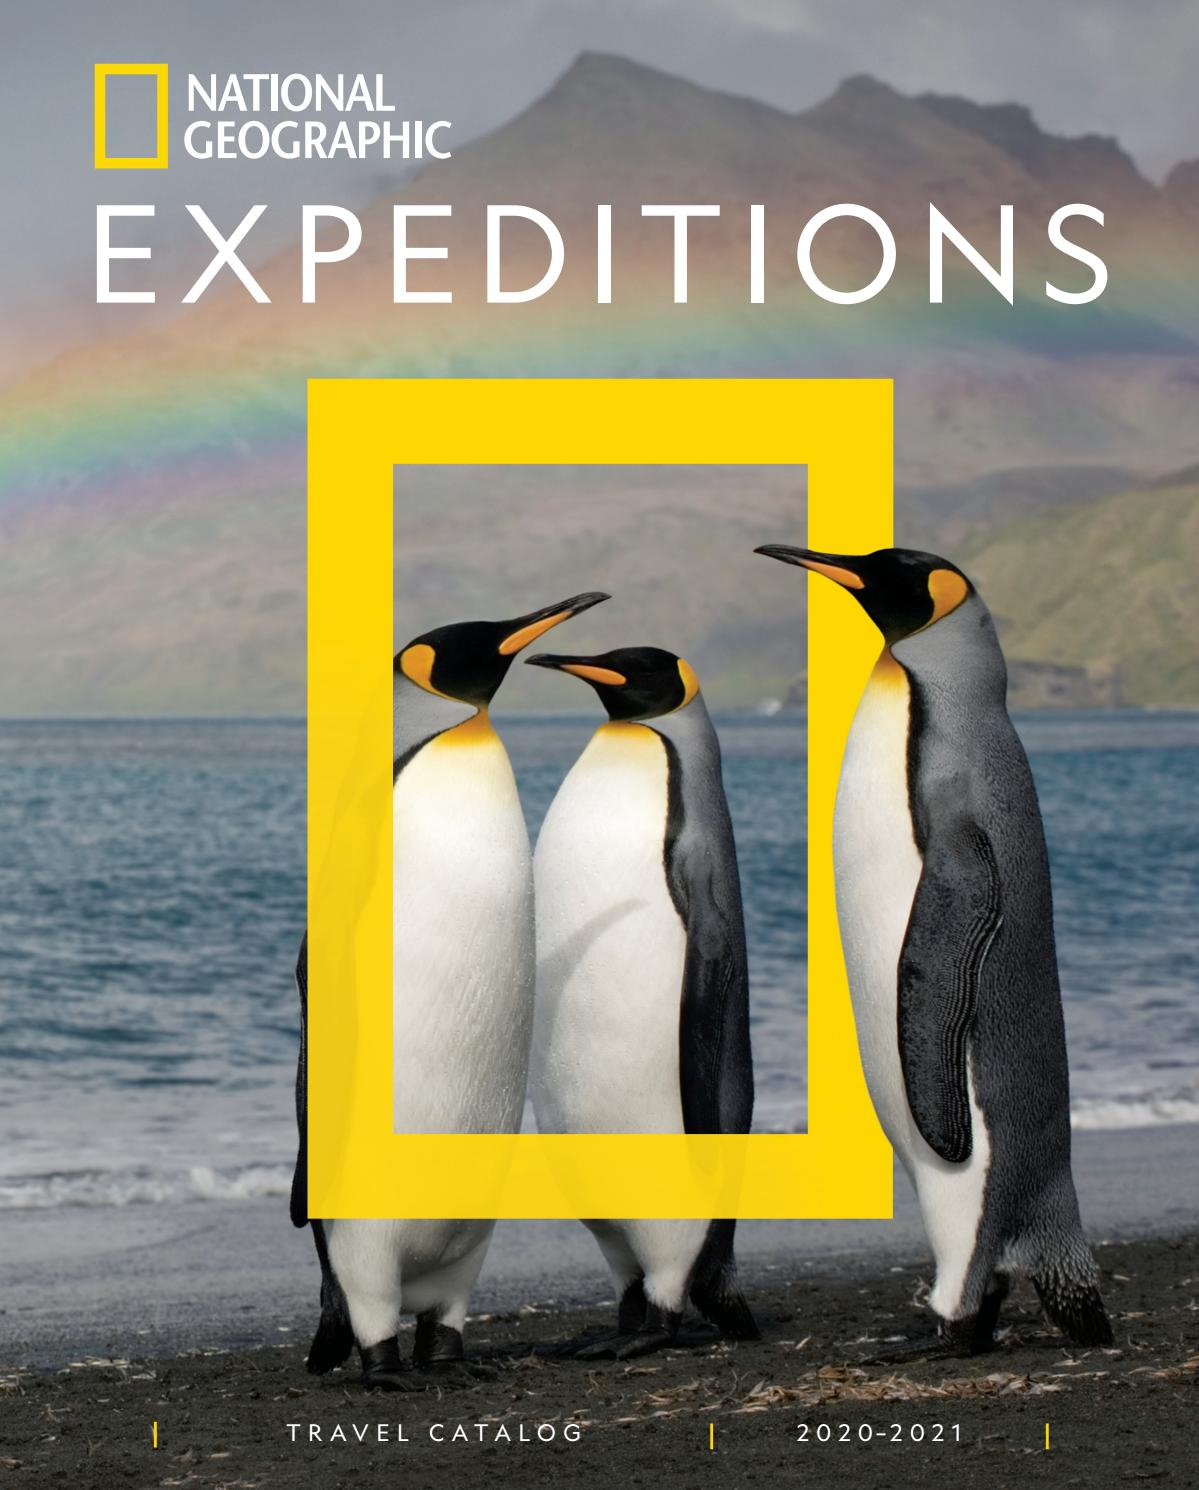 2020 2021 National Geographic Expeditions Catalog For Georgia State University 2021 2021 Calendar